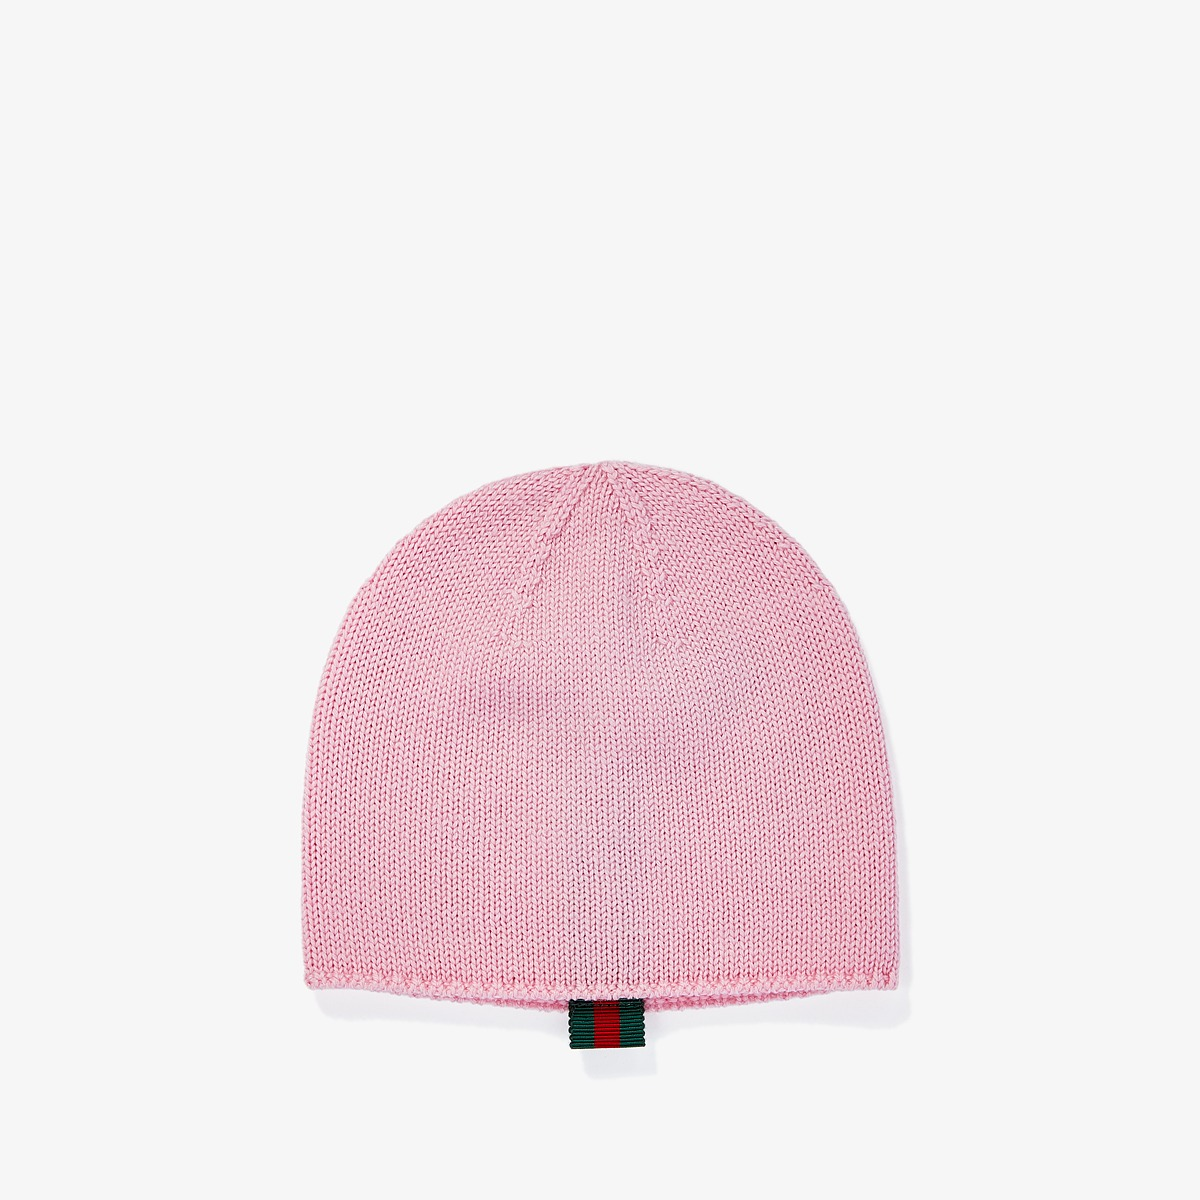 Gucci Kids - Hat 4735673K706 (Infant/Toddler) (Roseate) Caps